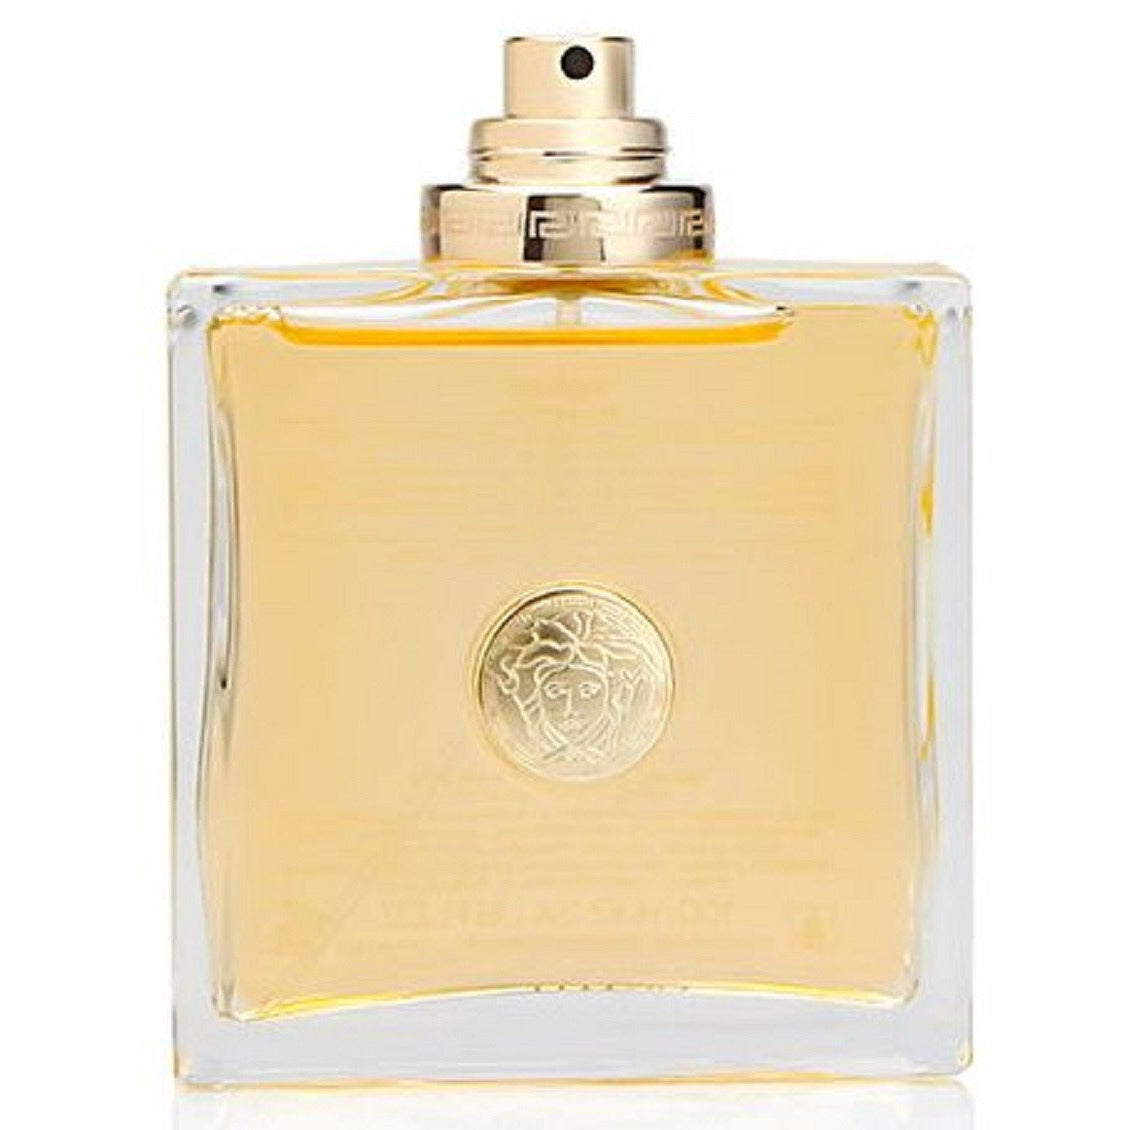 Versace Pour Femme by Gianni Versace for women EDP 3.3 / 3.4 oz New Tester